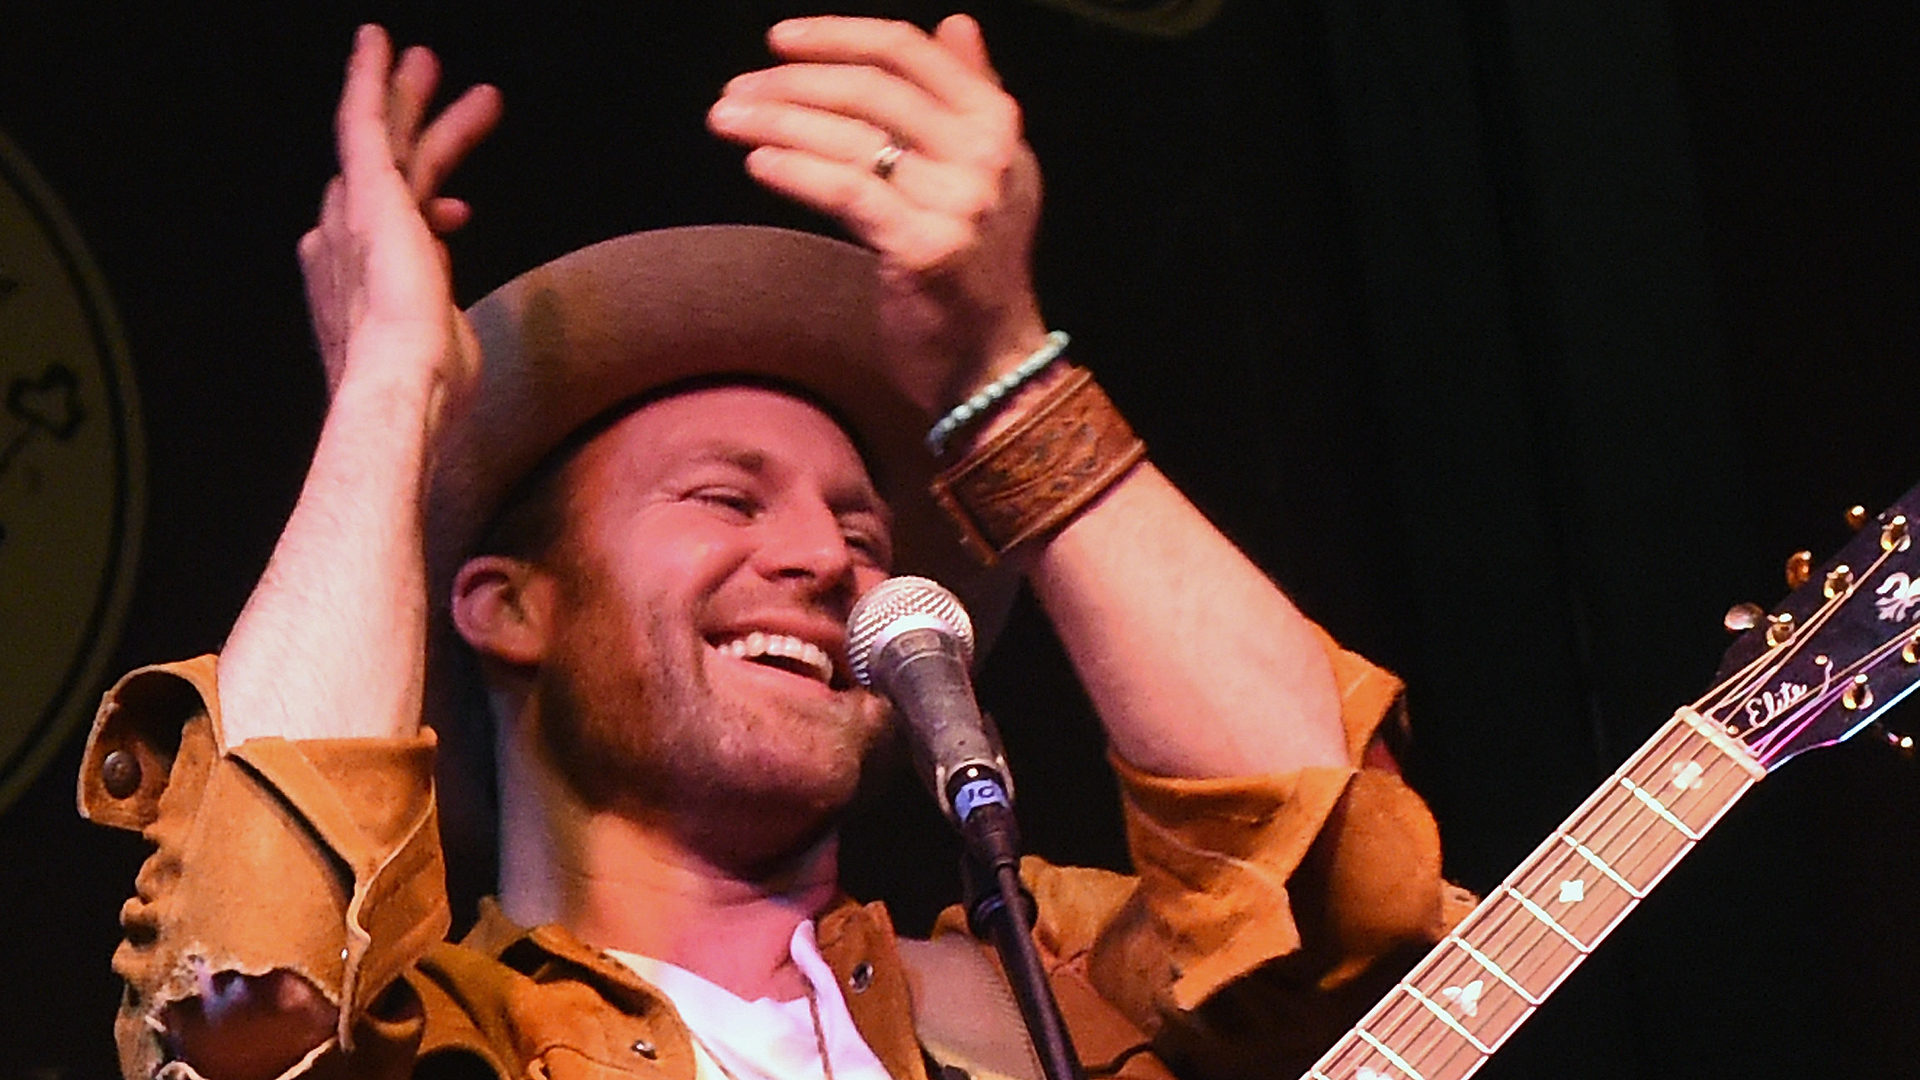 """Singer/Songwriter Drake White """"Livin' The Dream"""" Happy Hour and performance party at The Standard in the Smith House on January 12, 2016 in Nashville, Tennessee. (Credit: Rick Diamond/Getty Images)"""